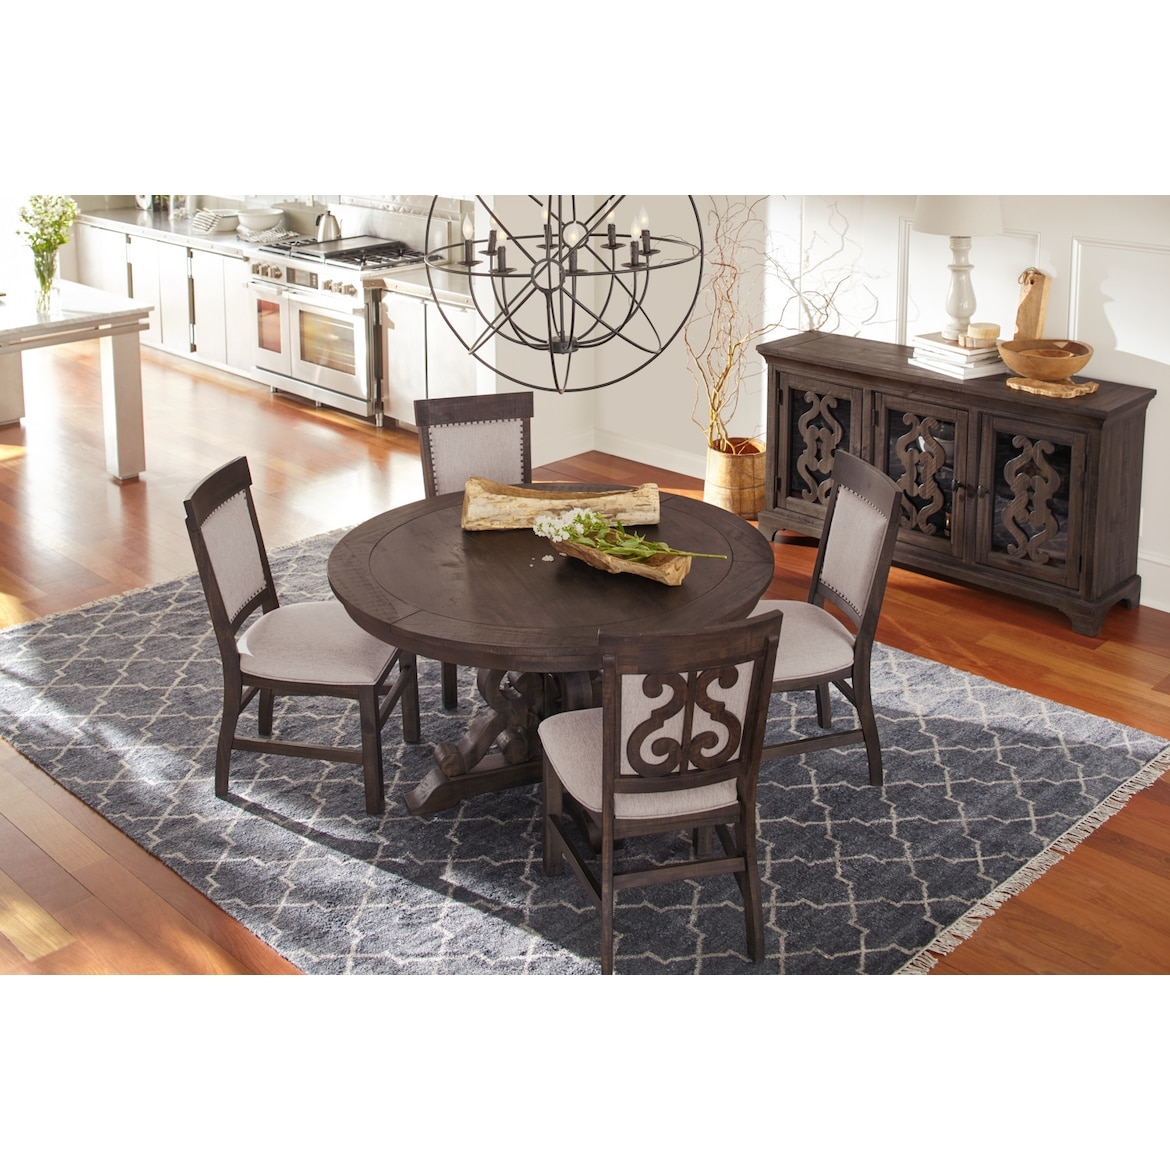 American Signature Furniture Salary: Charthouse Round Dining Table And 4 Upholstered Side